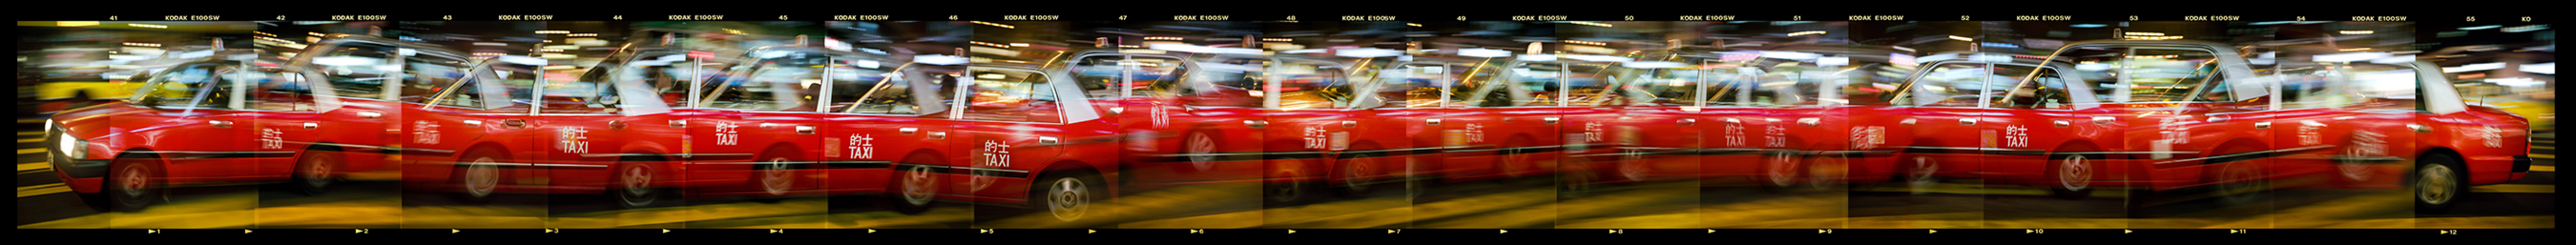 Hong Kong Taxi at Night 2002 © William Furniss